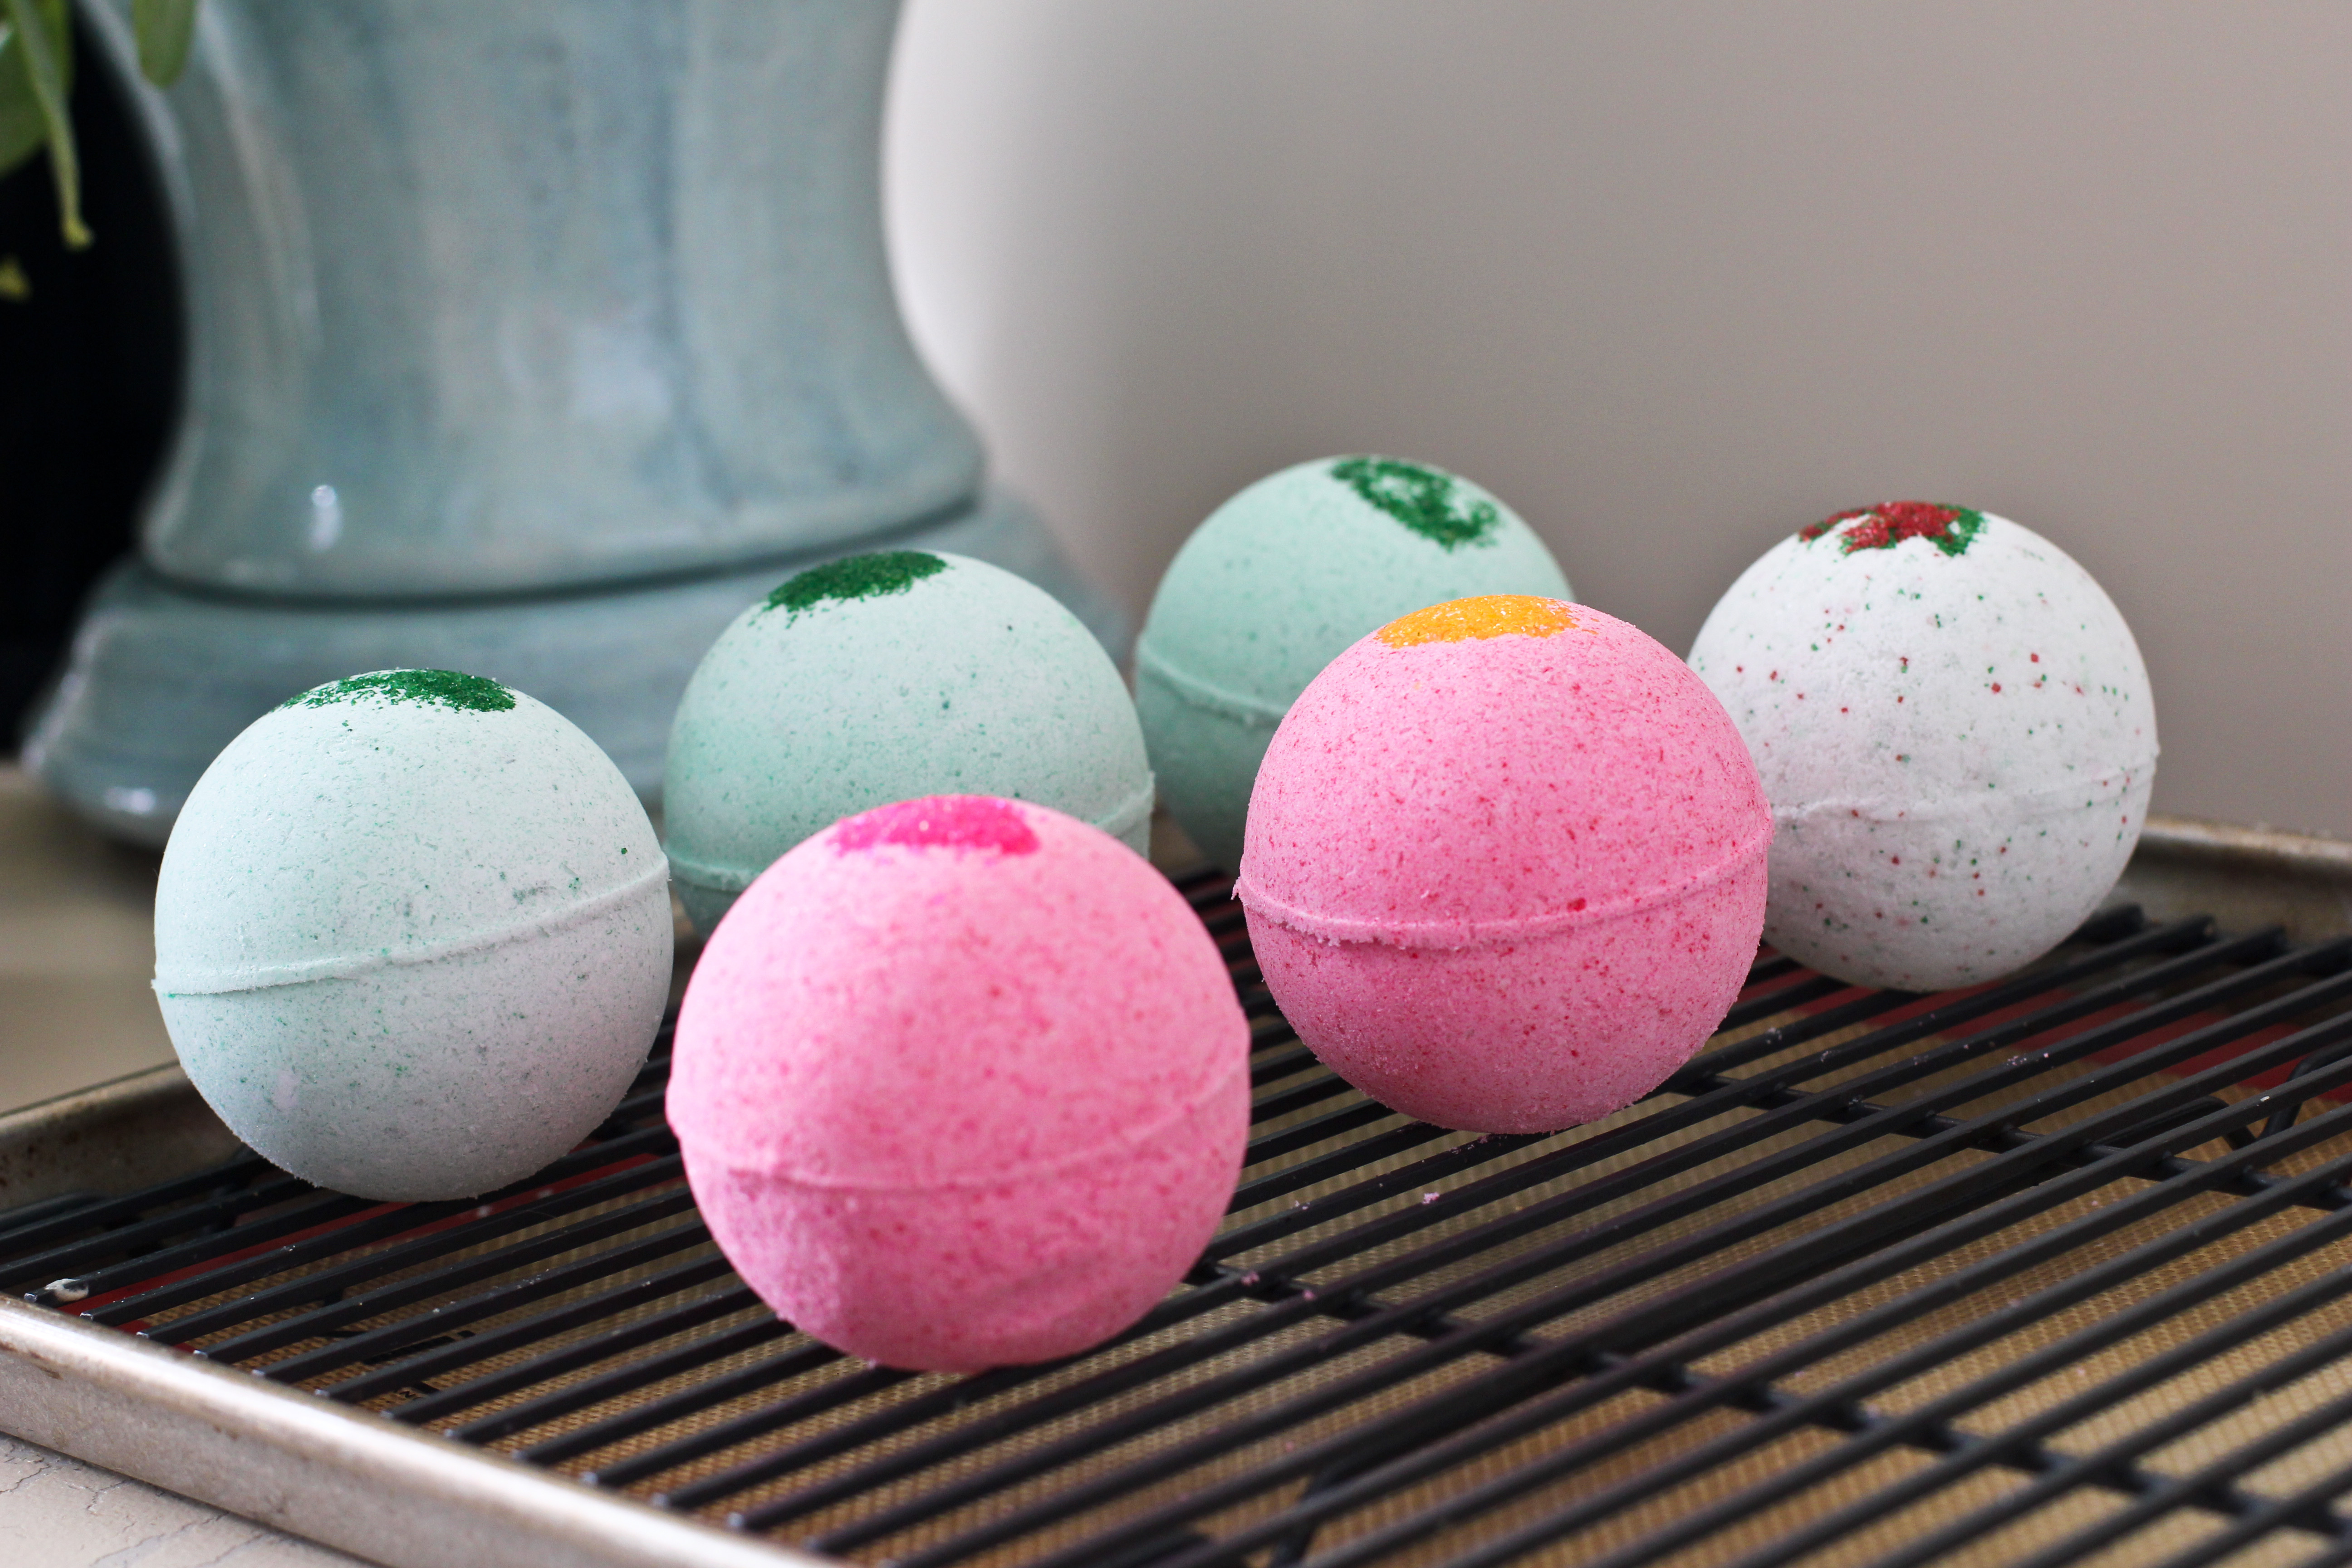 Best ideas about DIY Bath Bomb . Save or Pin Homemade Bath Bombs with Young Living Essential Oils Now.